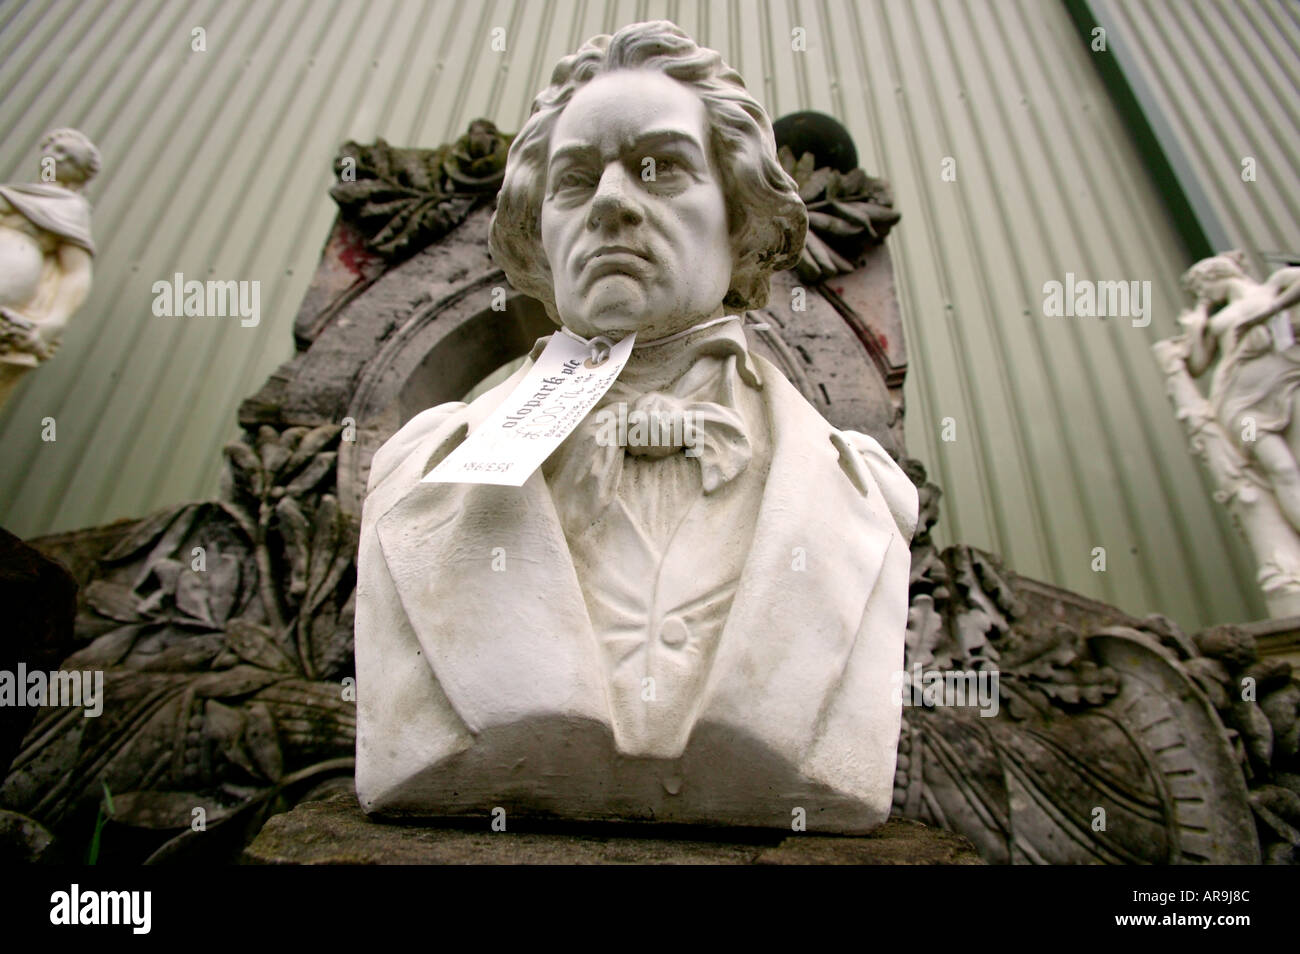 bust of beethoven at soloparks building supplies  yard, cambridgeshire, uk - Stock Image